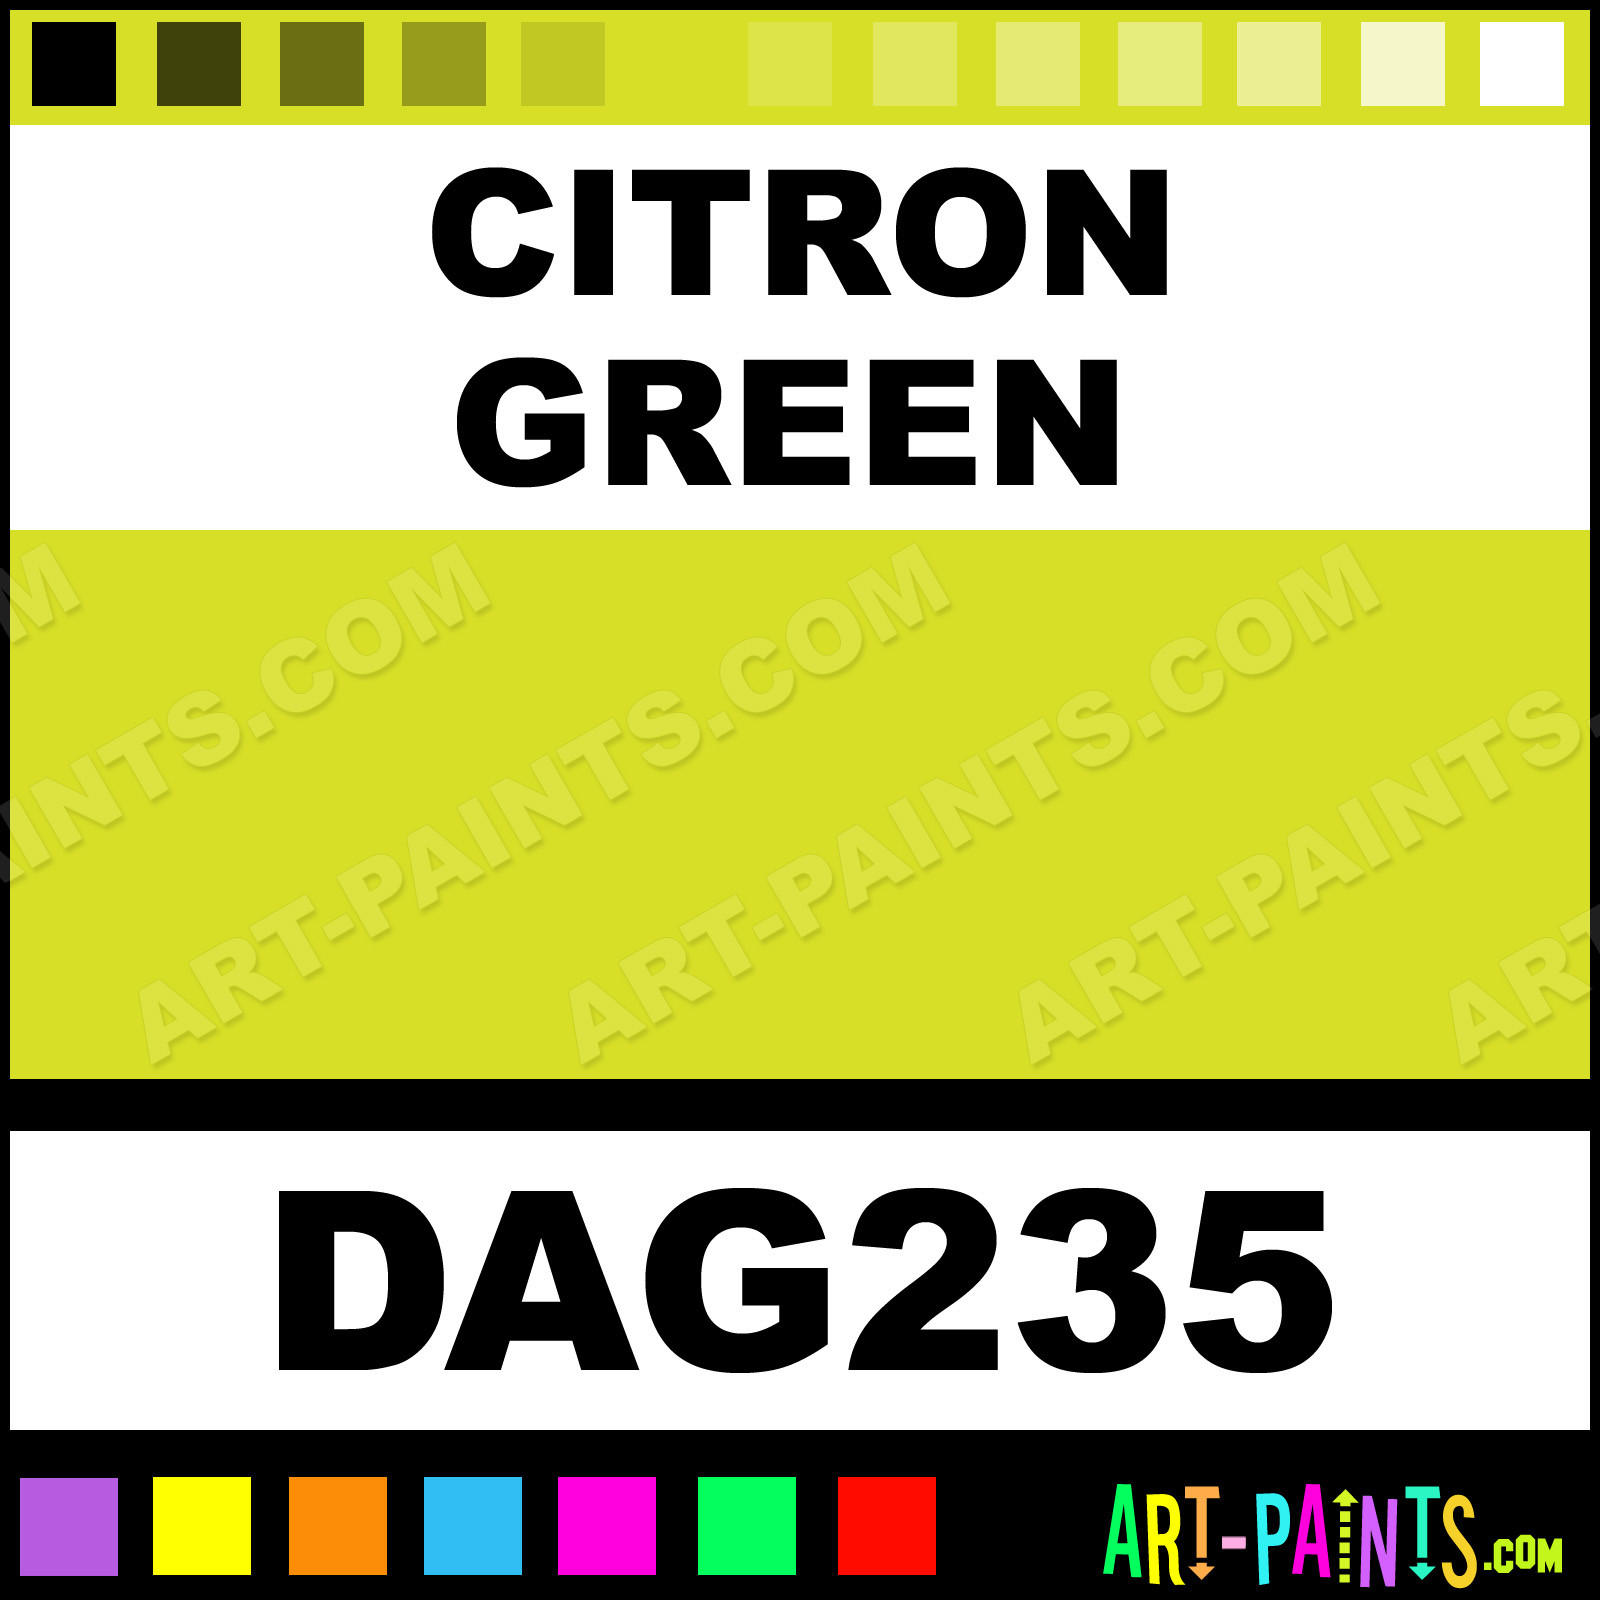 Citron green